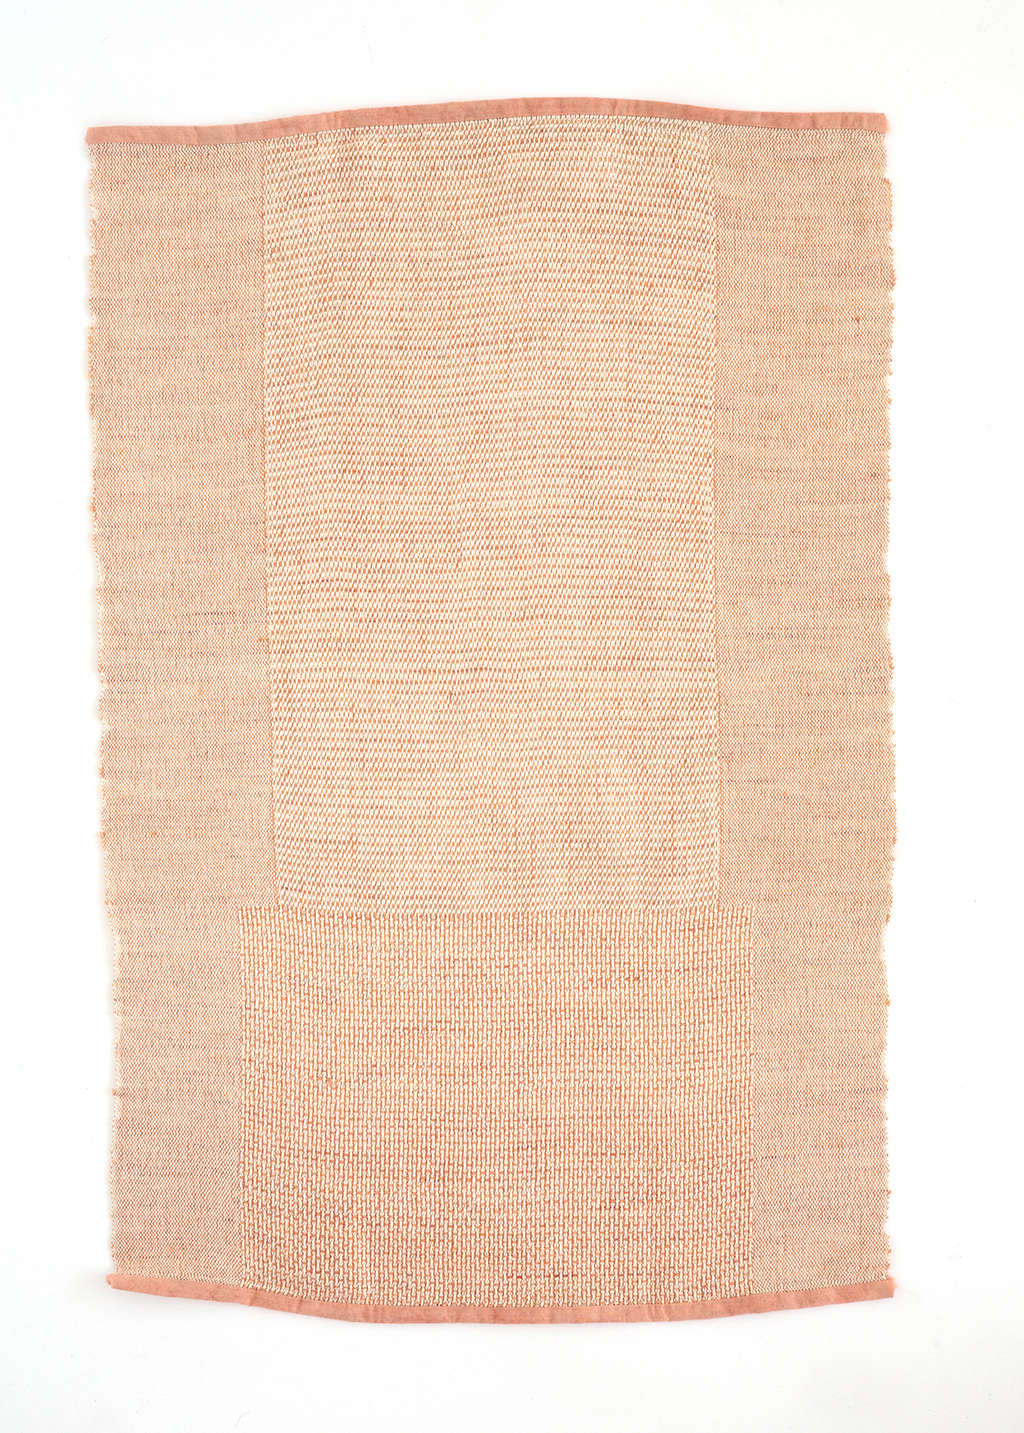 Sin'sWine-Stained Hand Towel features pale pink on one side and a deeper ochre hue on the reverse; $56. Also available in Natural andTea-Stained.